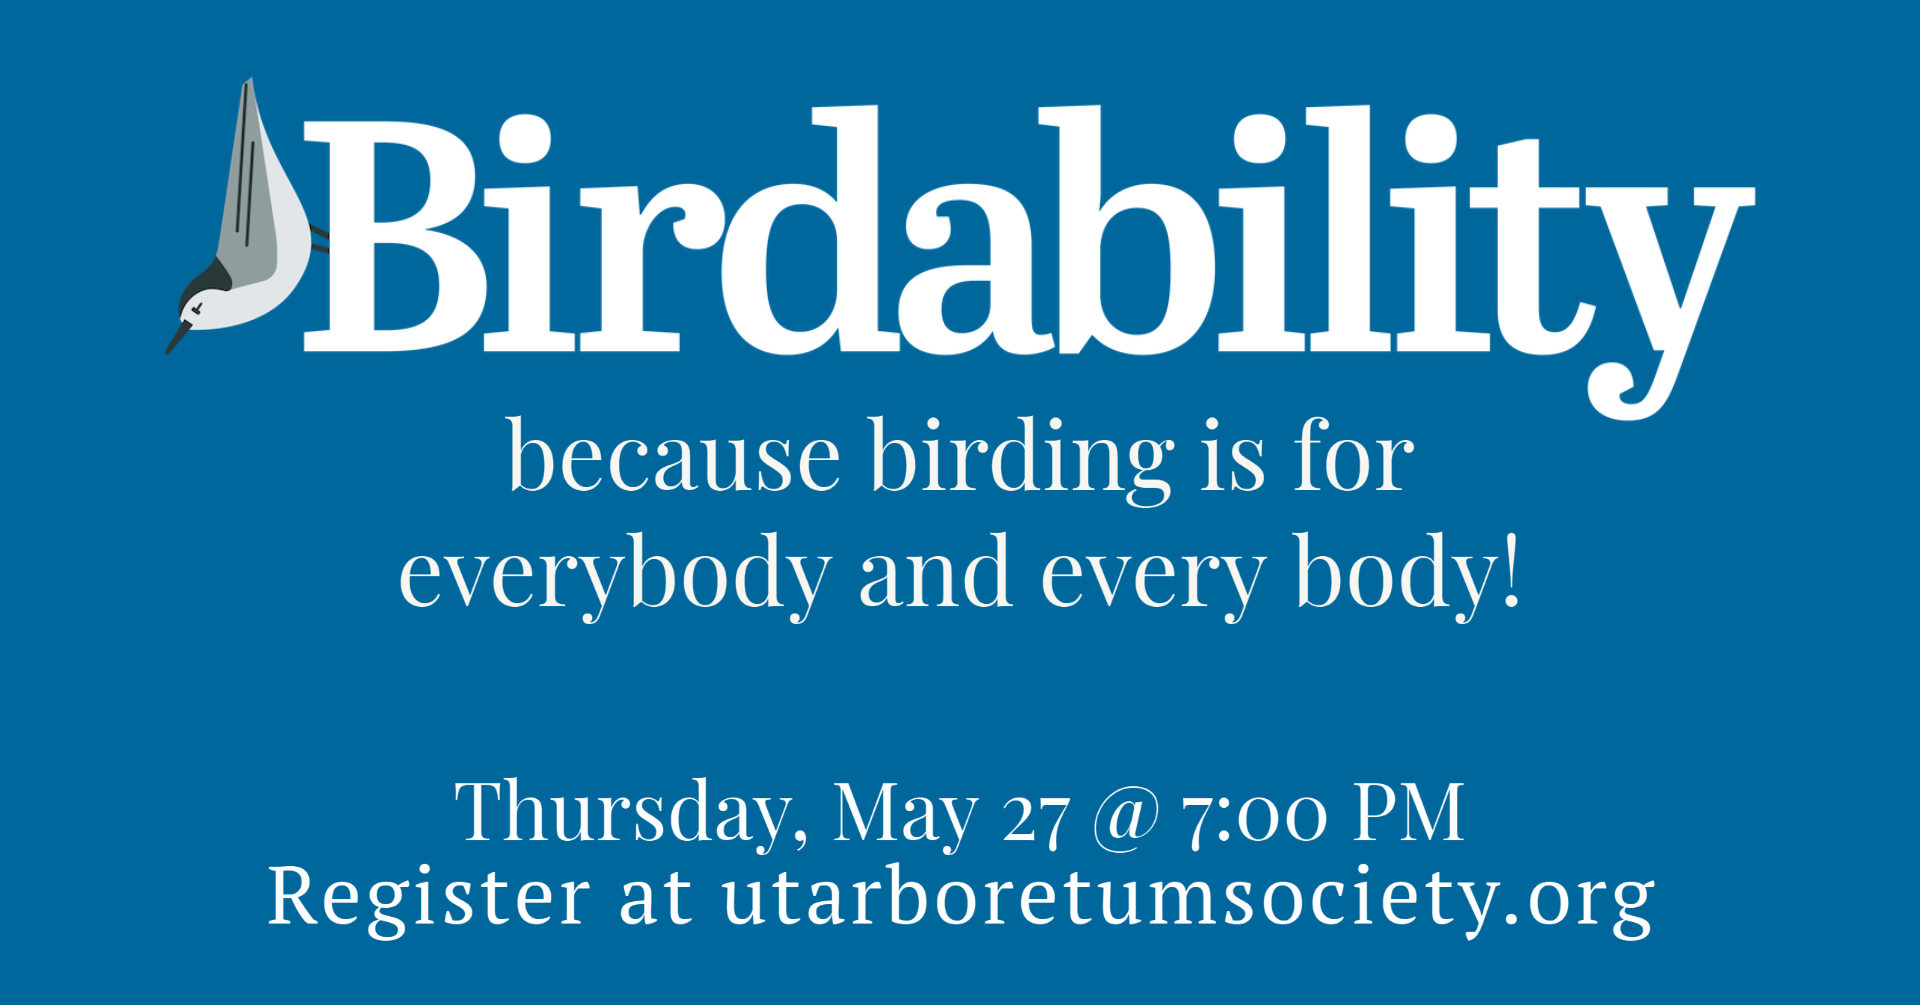 Birdability: Because Birding is for Everybody and Every Body!